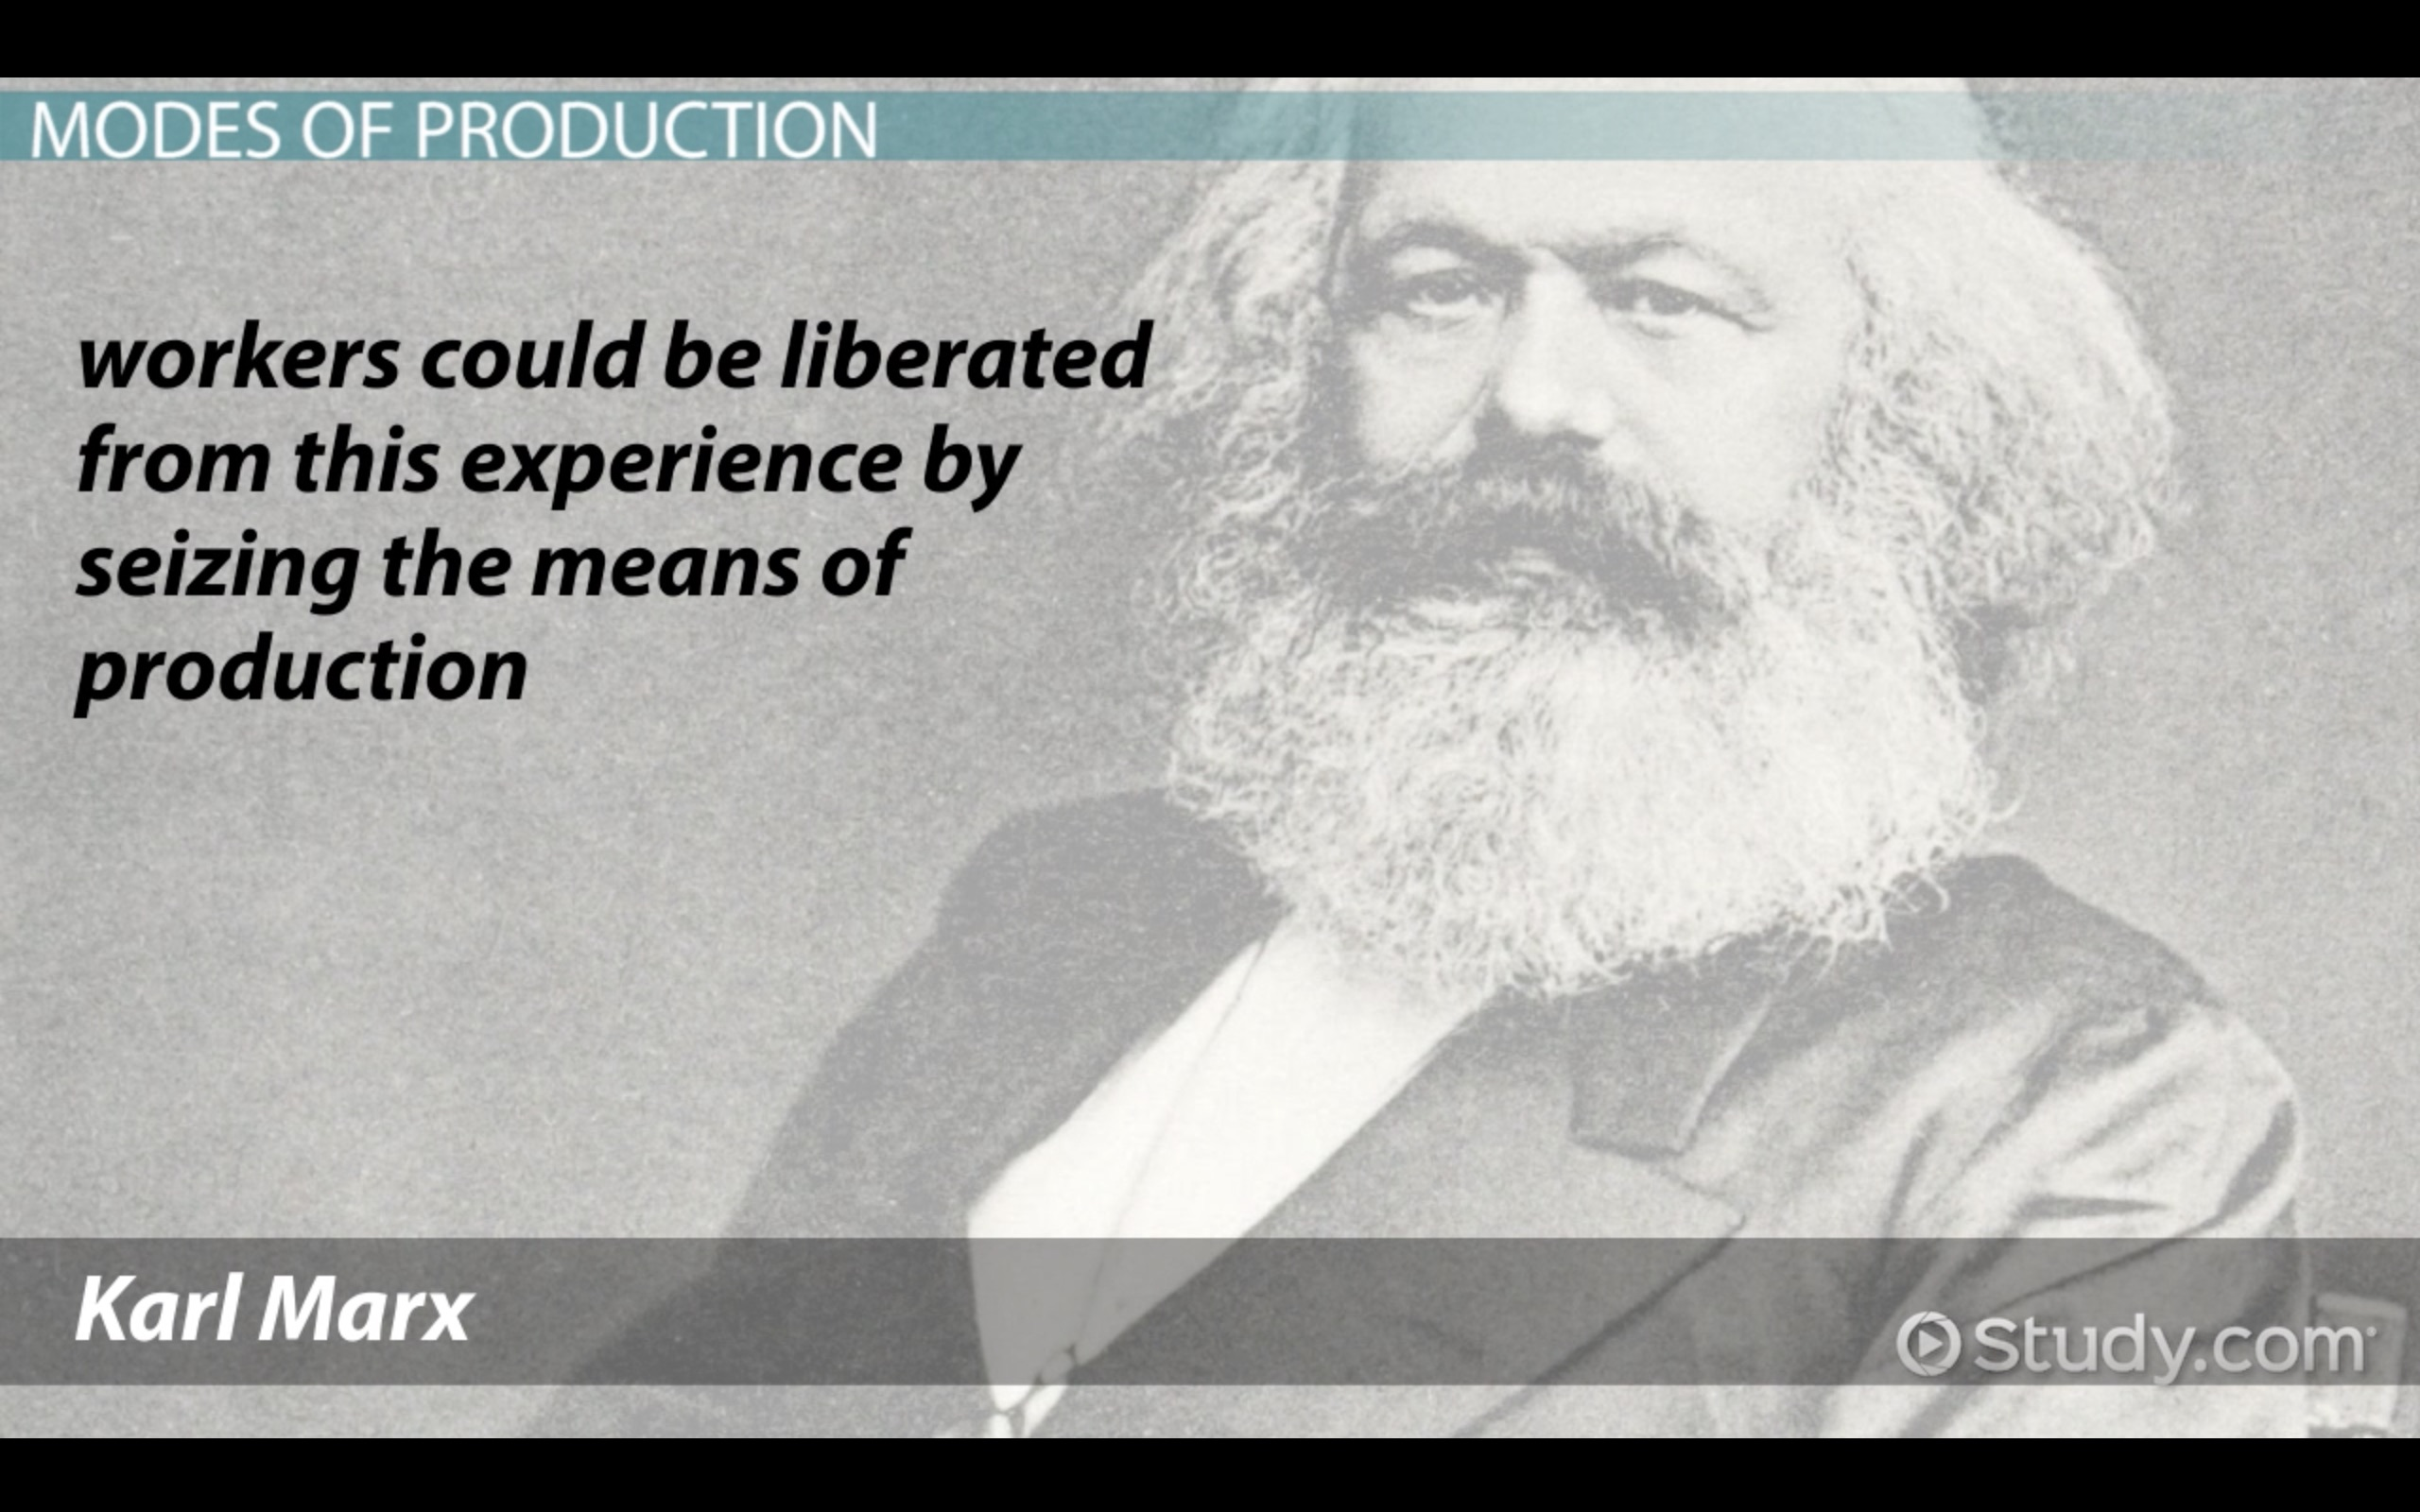 the communist manifesto summary analysis video lesson means of production in sociology definition concept